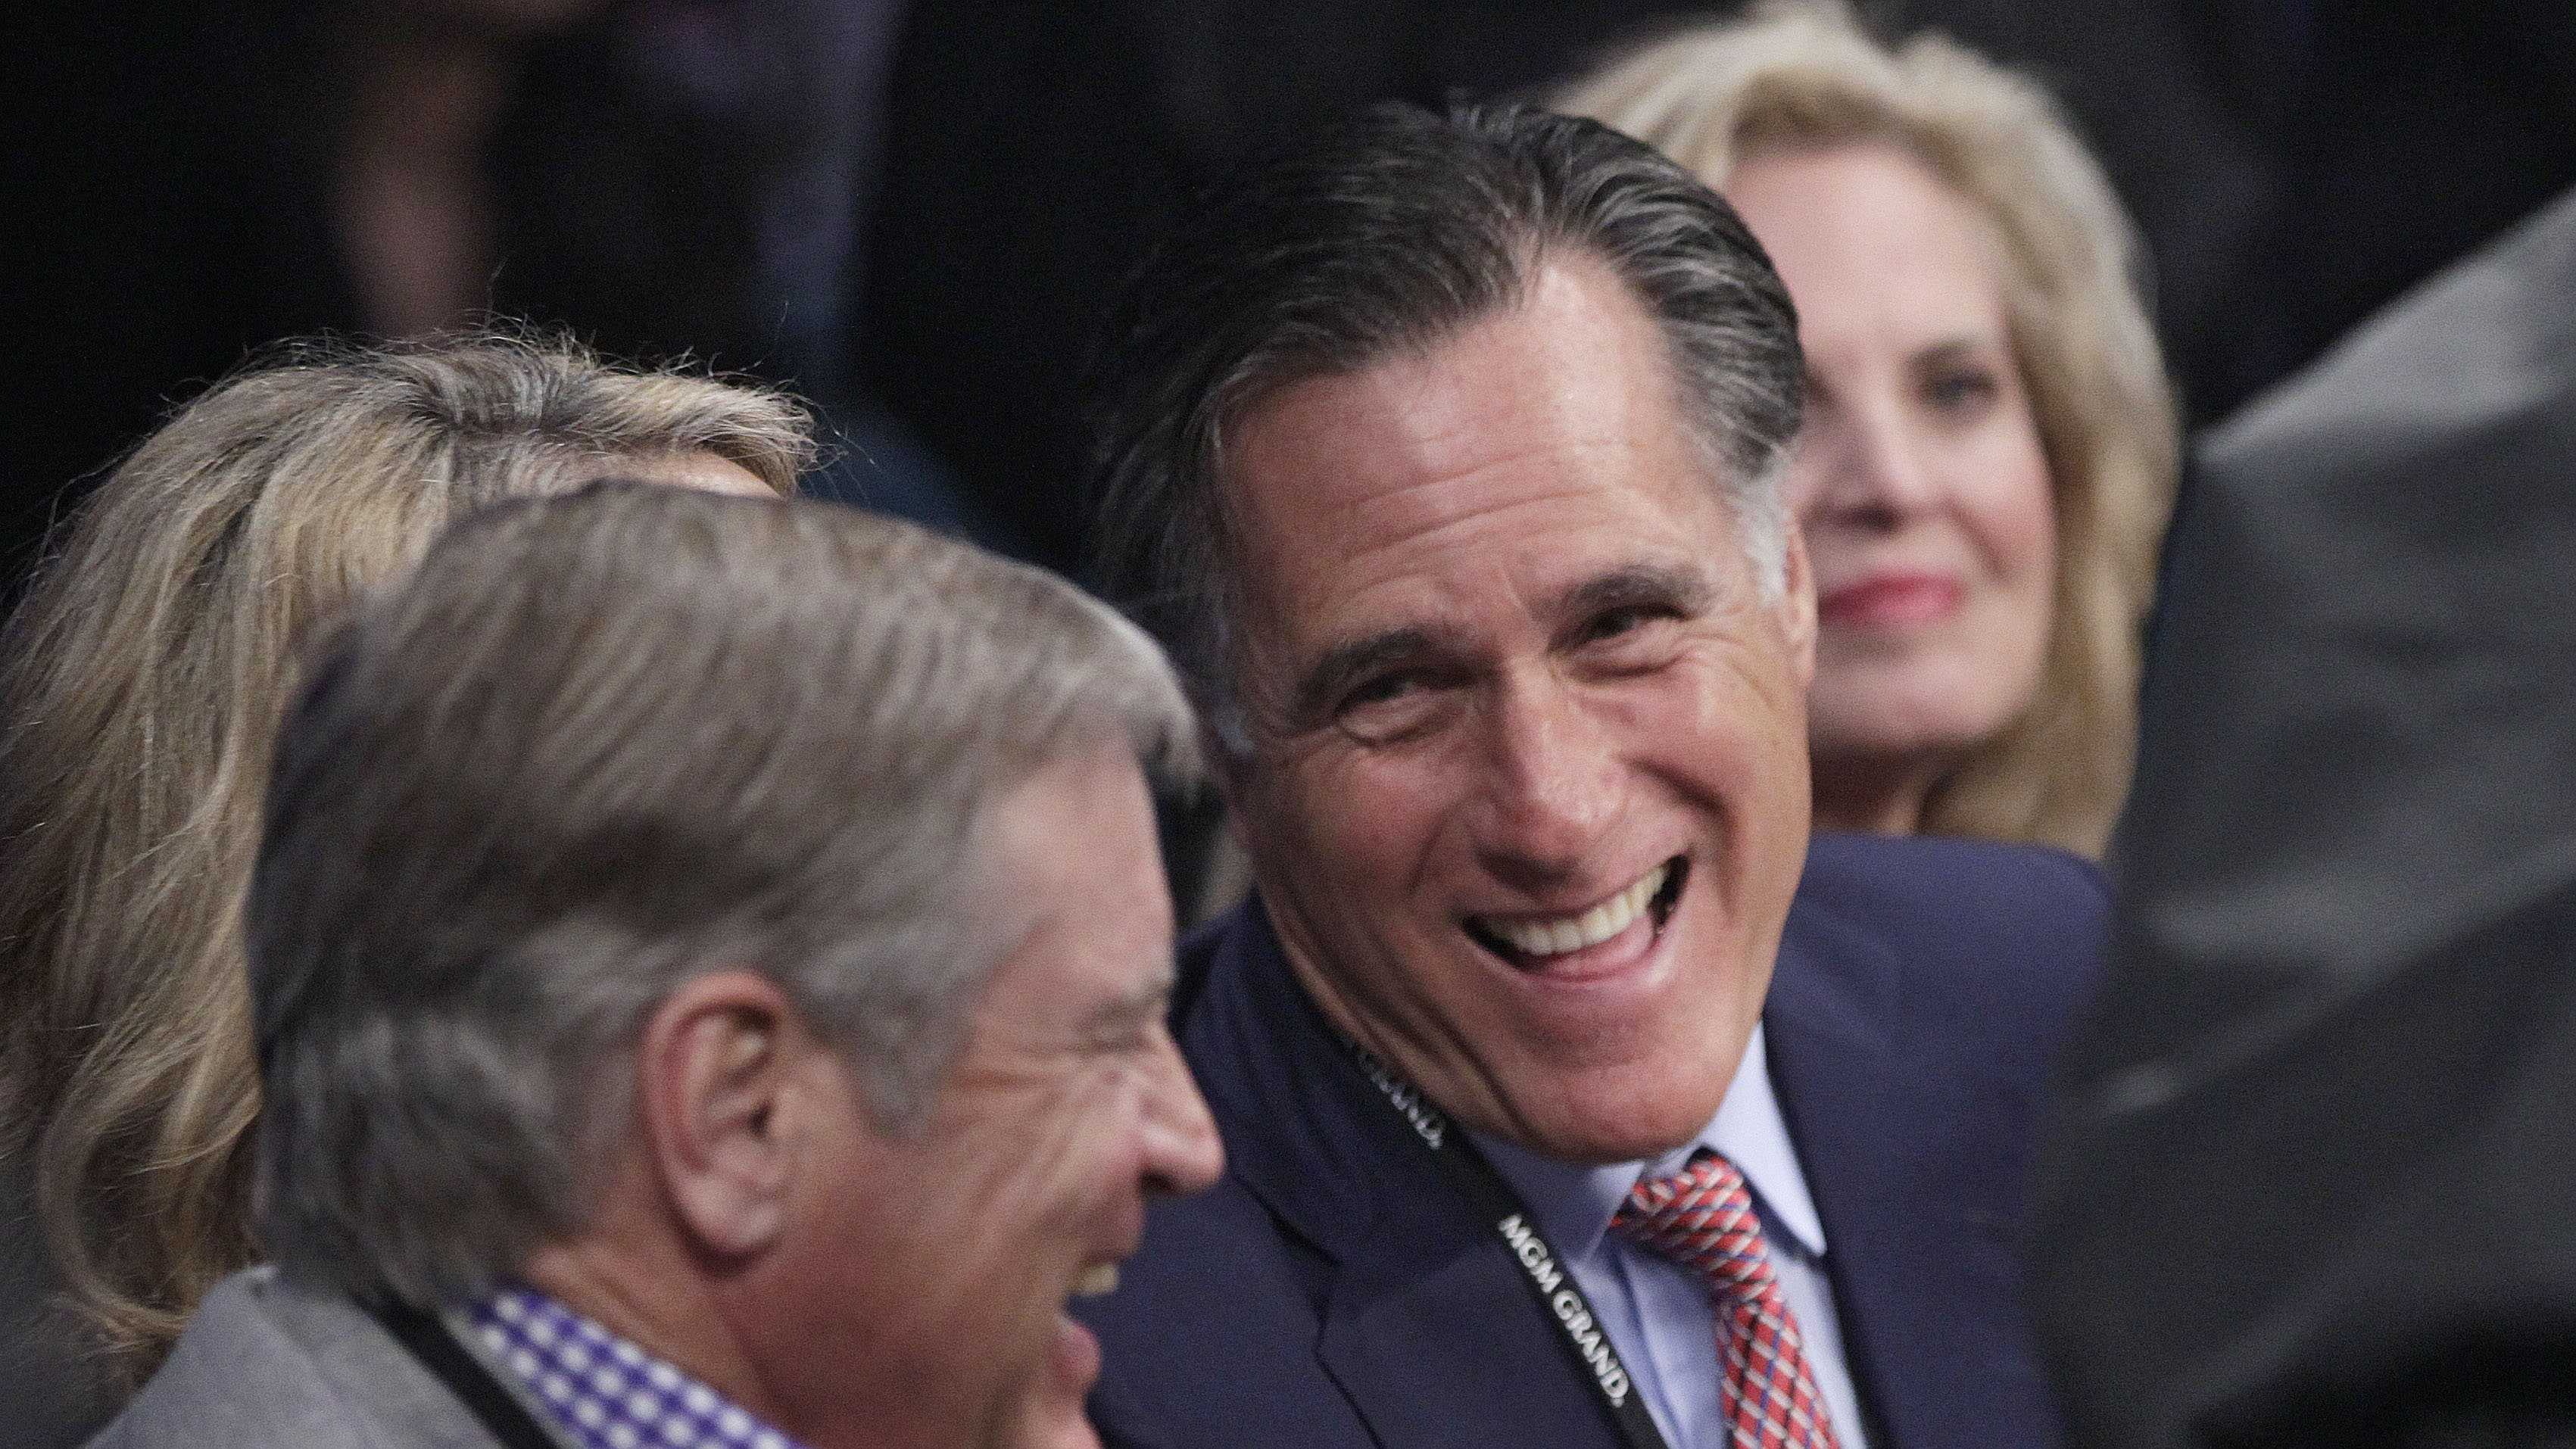 Former Republican presidential candidate Mitt Romney, center, joined by wife Ann, right, talks with an unidentified spectator at ringside prior to a welterweight fight between Juan Manuel Marquez and Manny Pacquiao title fight in Las Vegas.